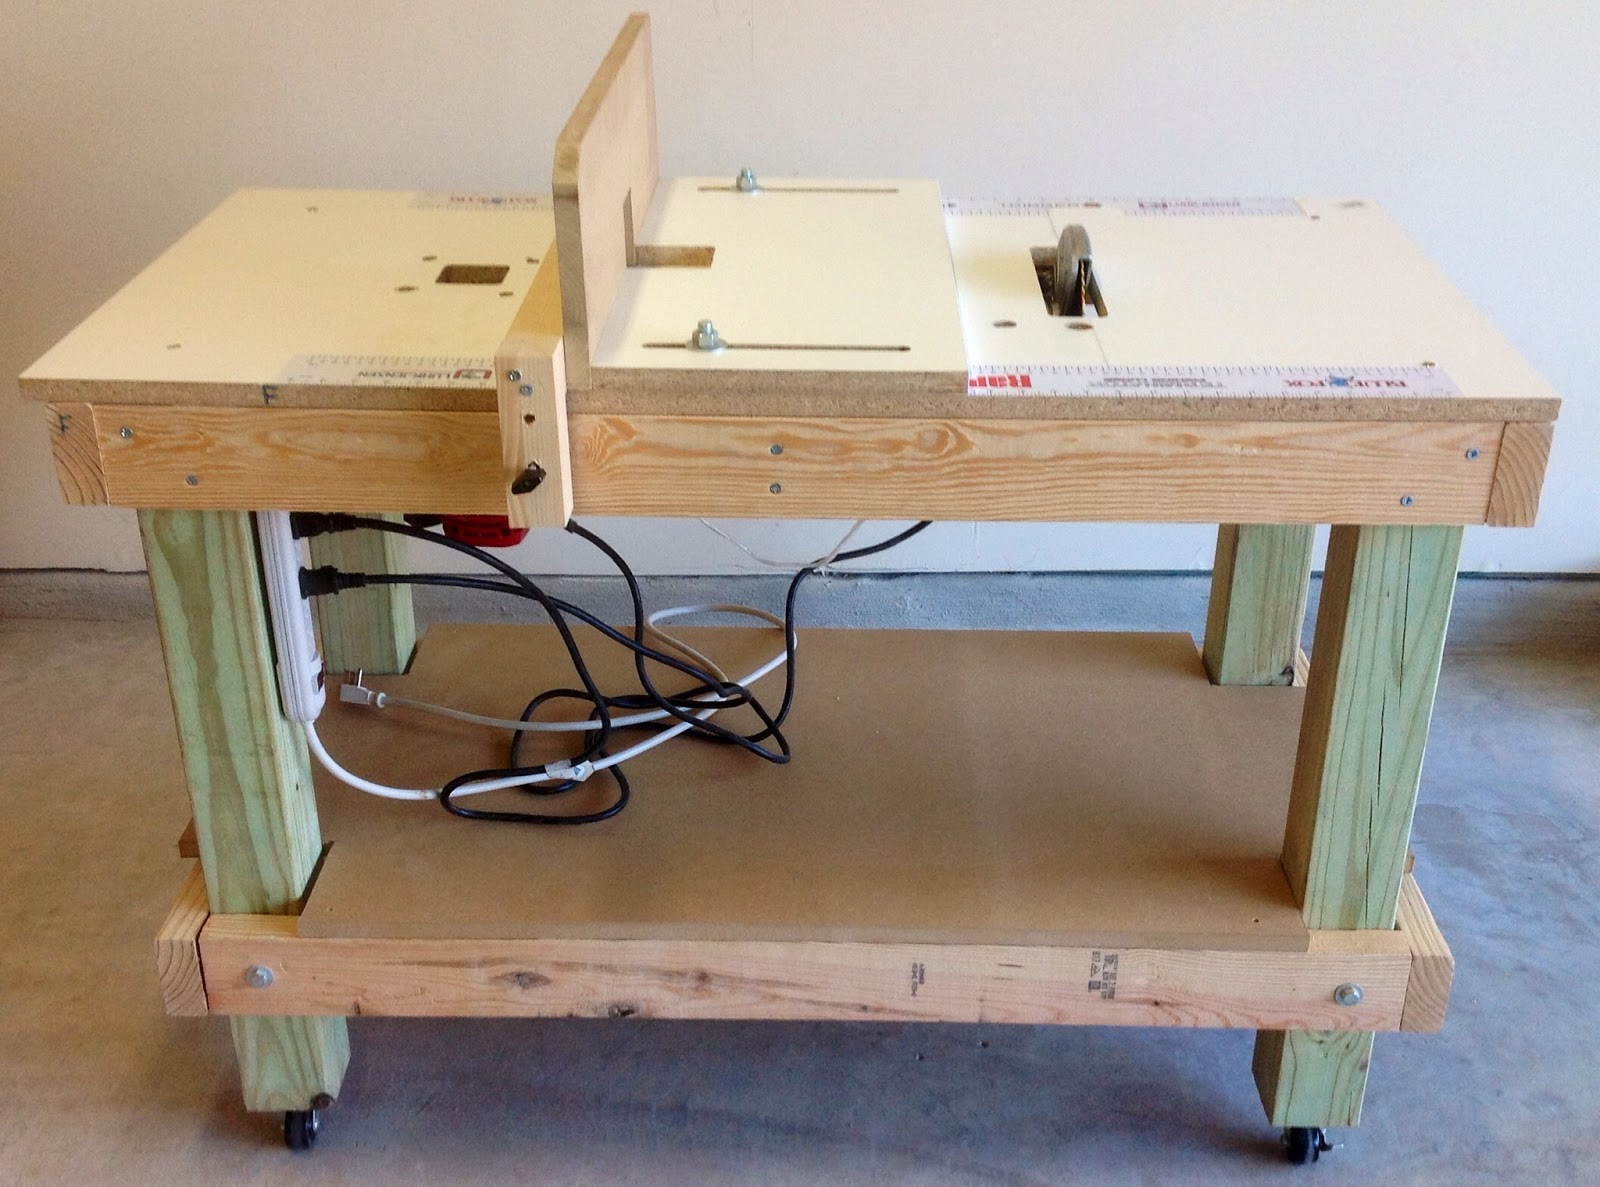 Thinking Wood Project 2 Diy Portable 3 In 1 Workbench